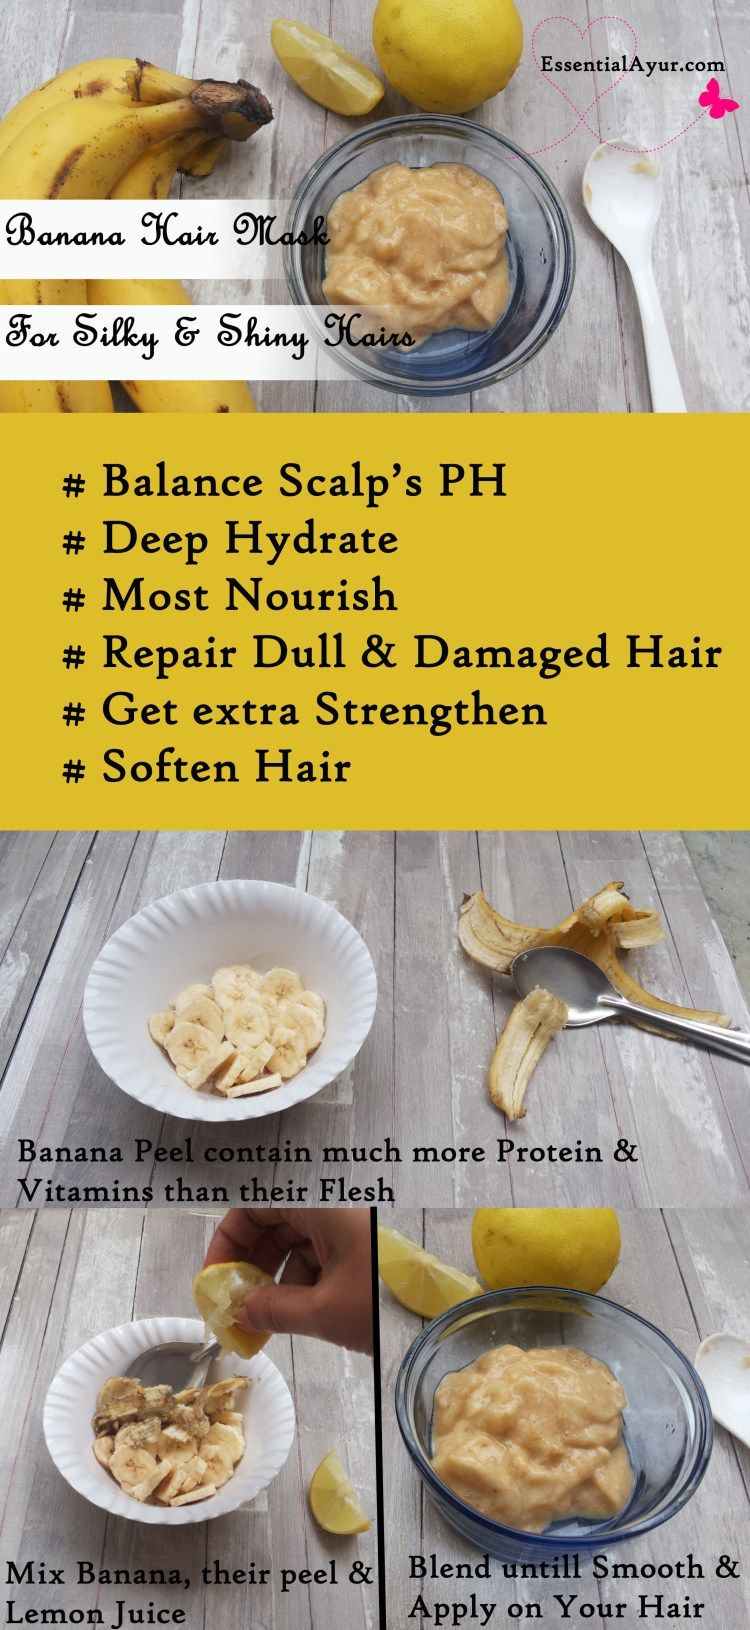 Diy Banana Hair Mask For Super Shiny And Silky Smooth Hairs Essential Ayur The Ved Of Life Banana For Hair Banana Hair Mask Hair Mask